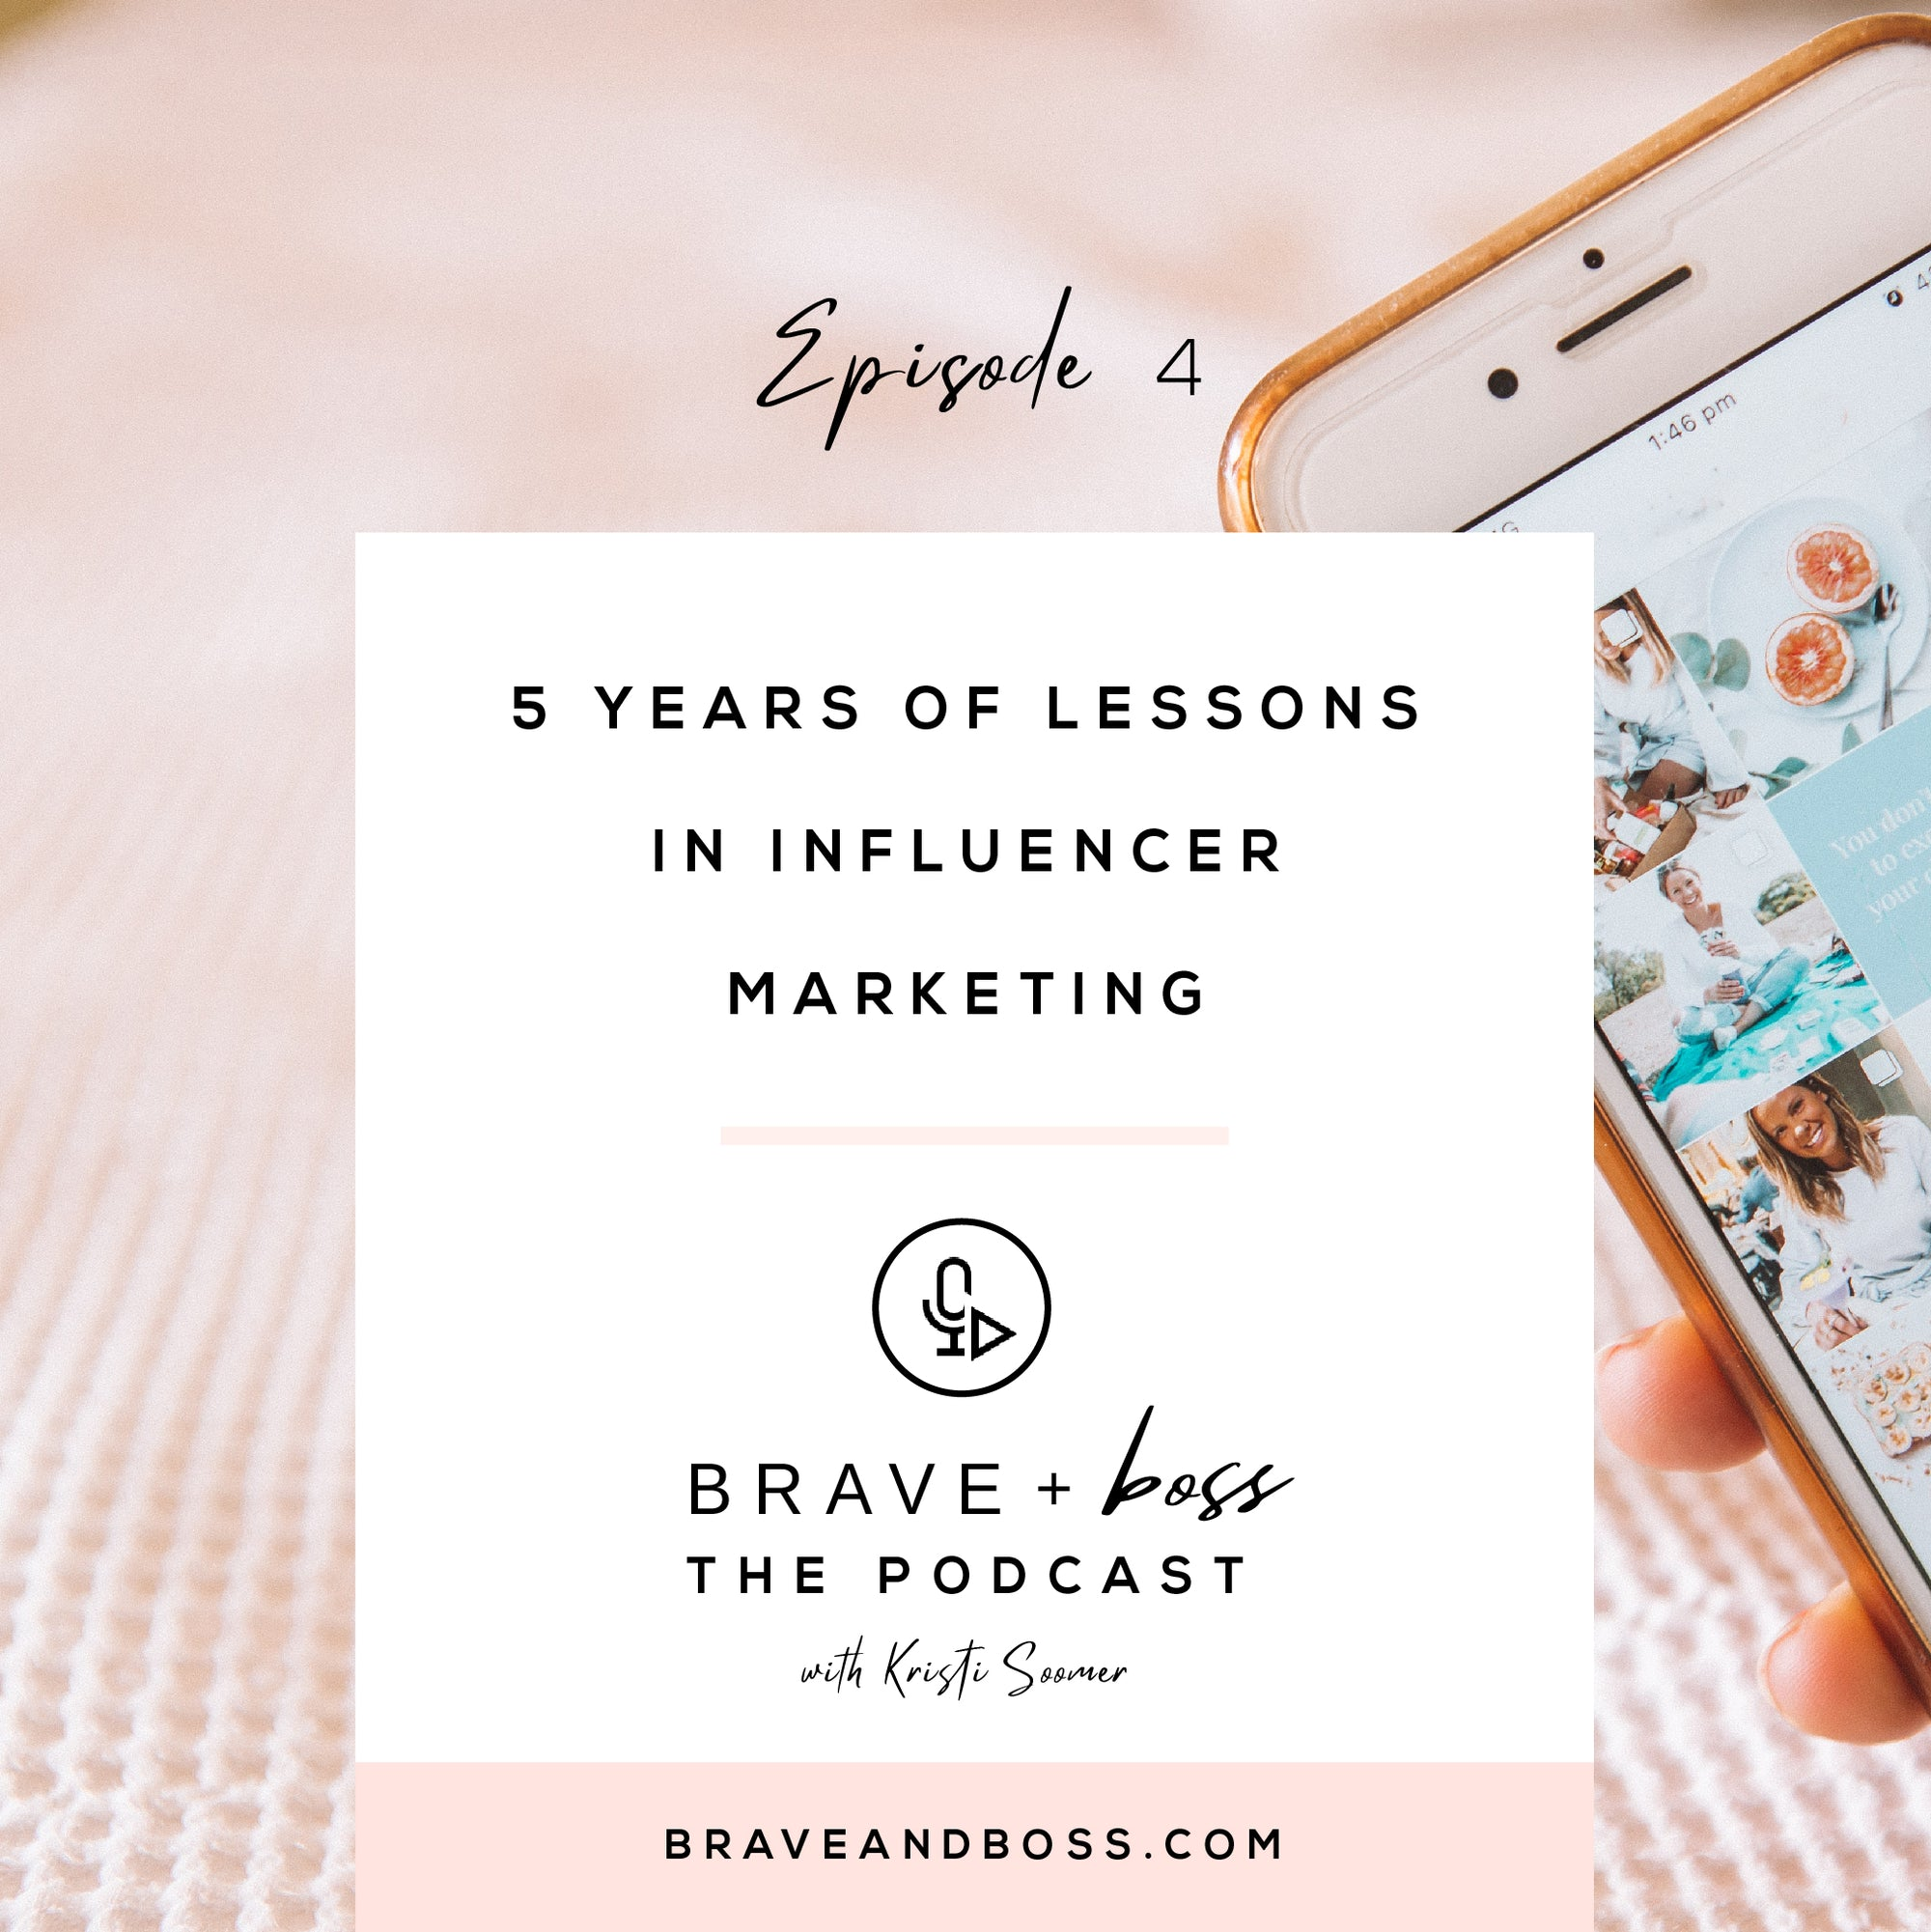 5 Years of Lessons in Influencer Marketing